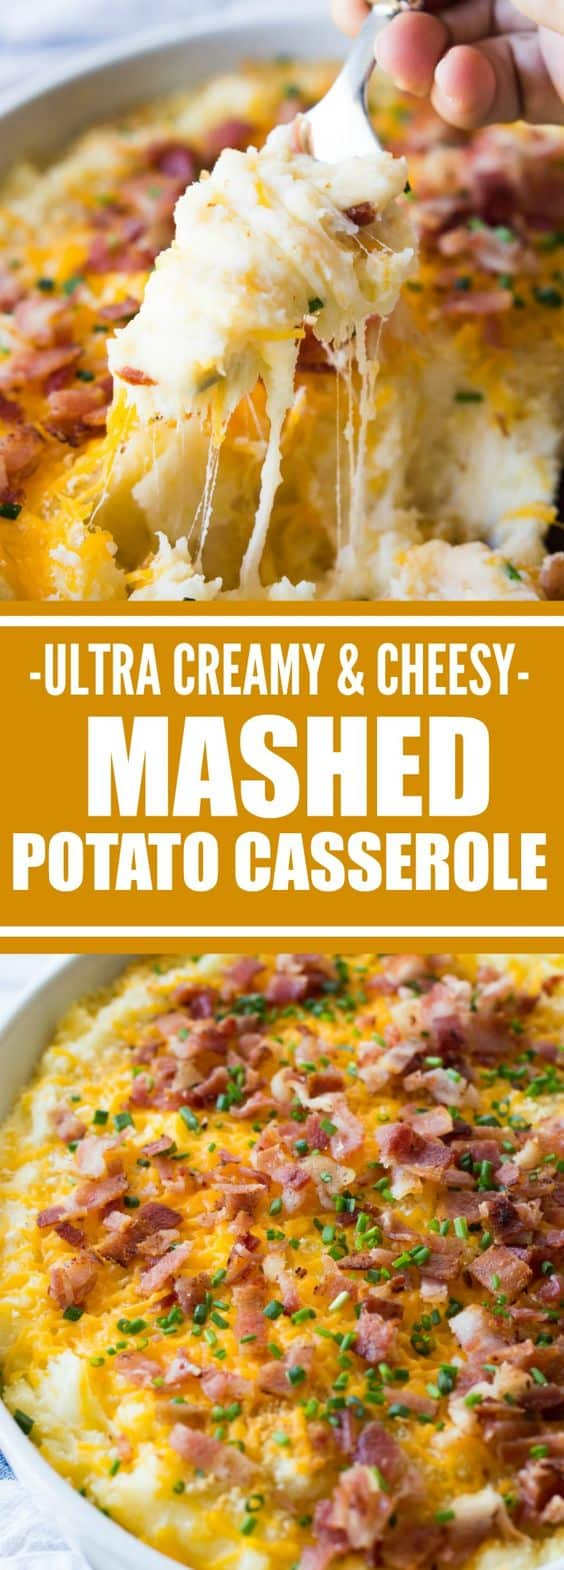 Mashed Potato Casserole. 25 Best Thanksgiving recipes for dinner party! Are you hosting Thanksgiving this year? Get your cooking inspiration in Thanksgiving food, side dishes, find some stuffing recipes for Thanksgiving.